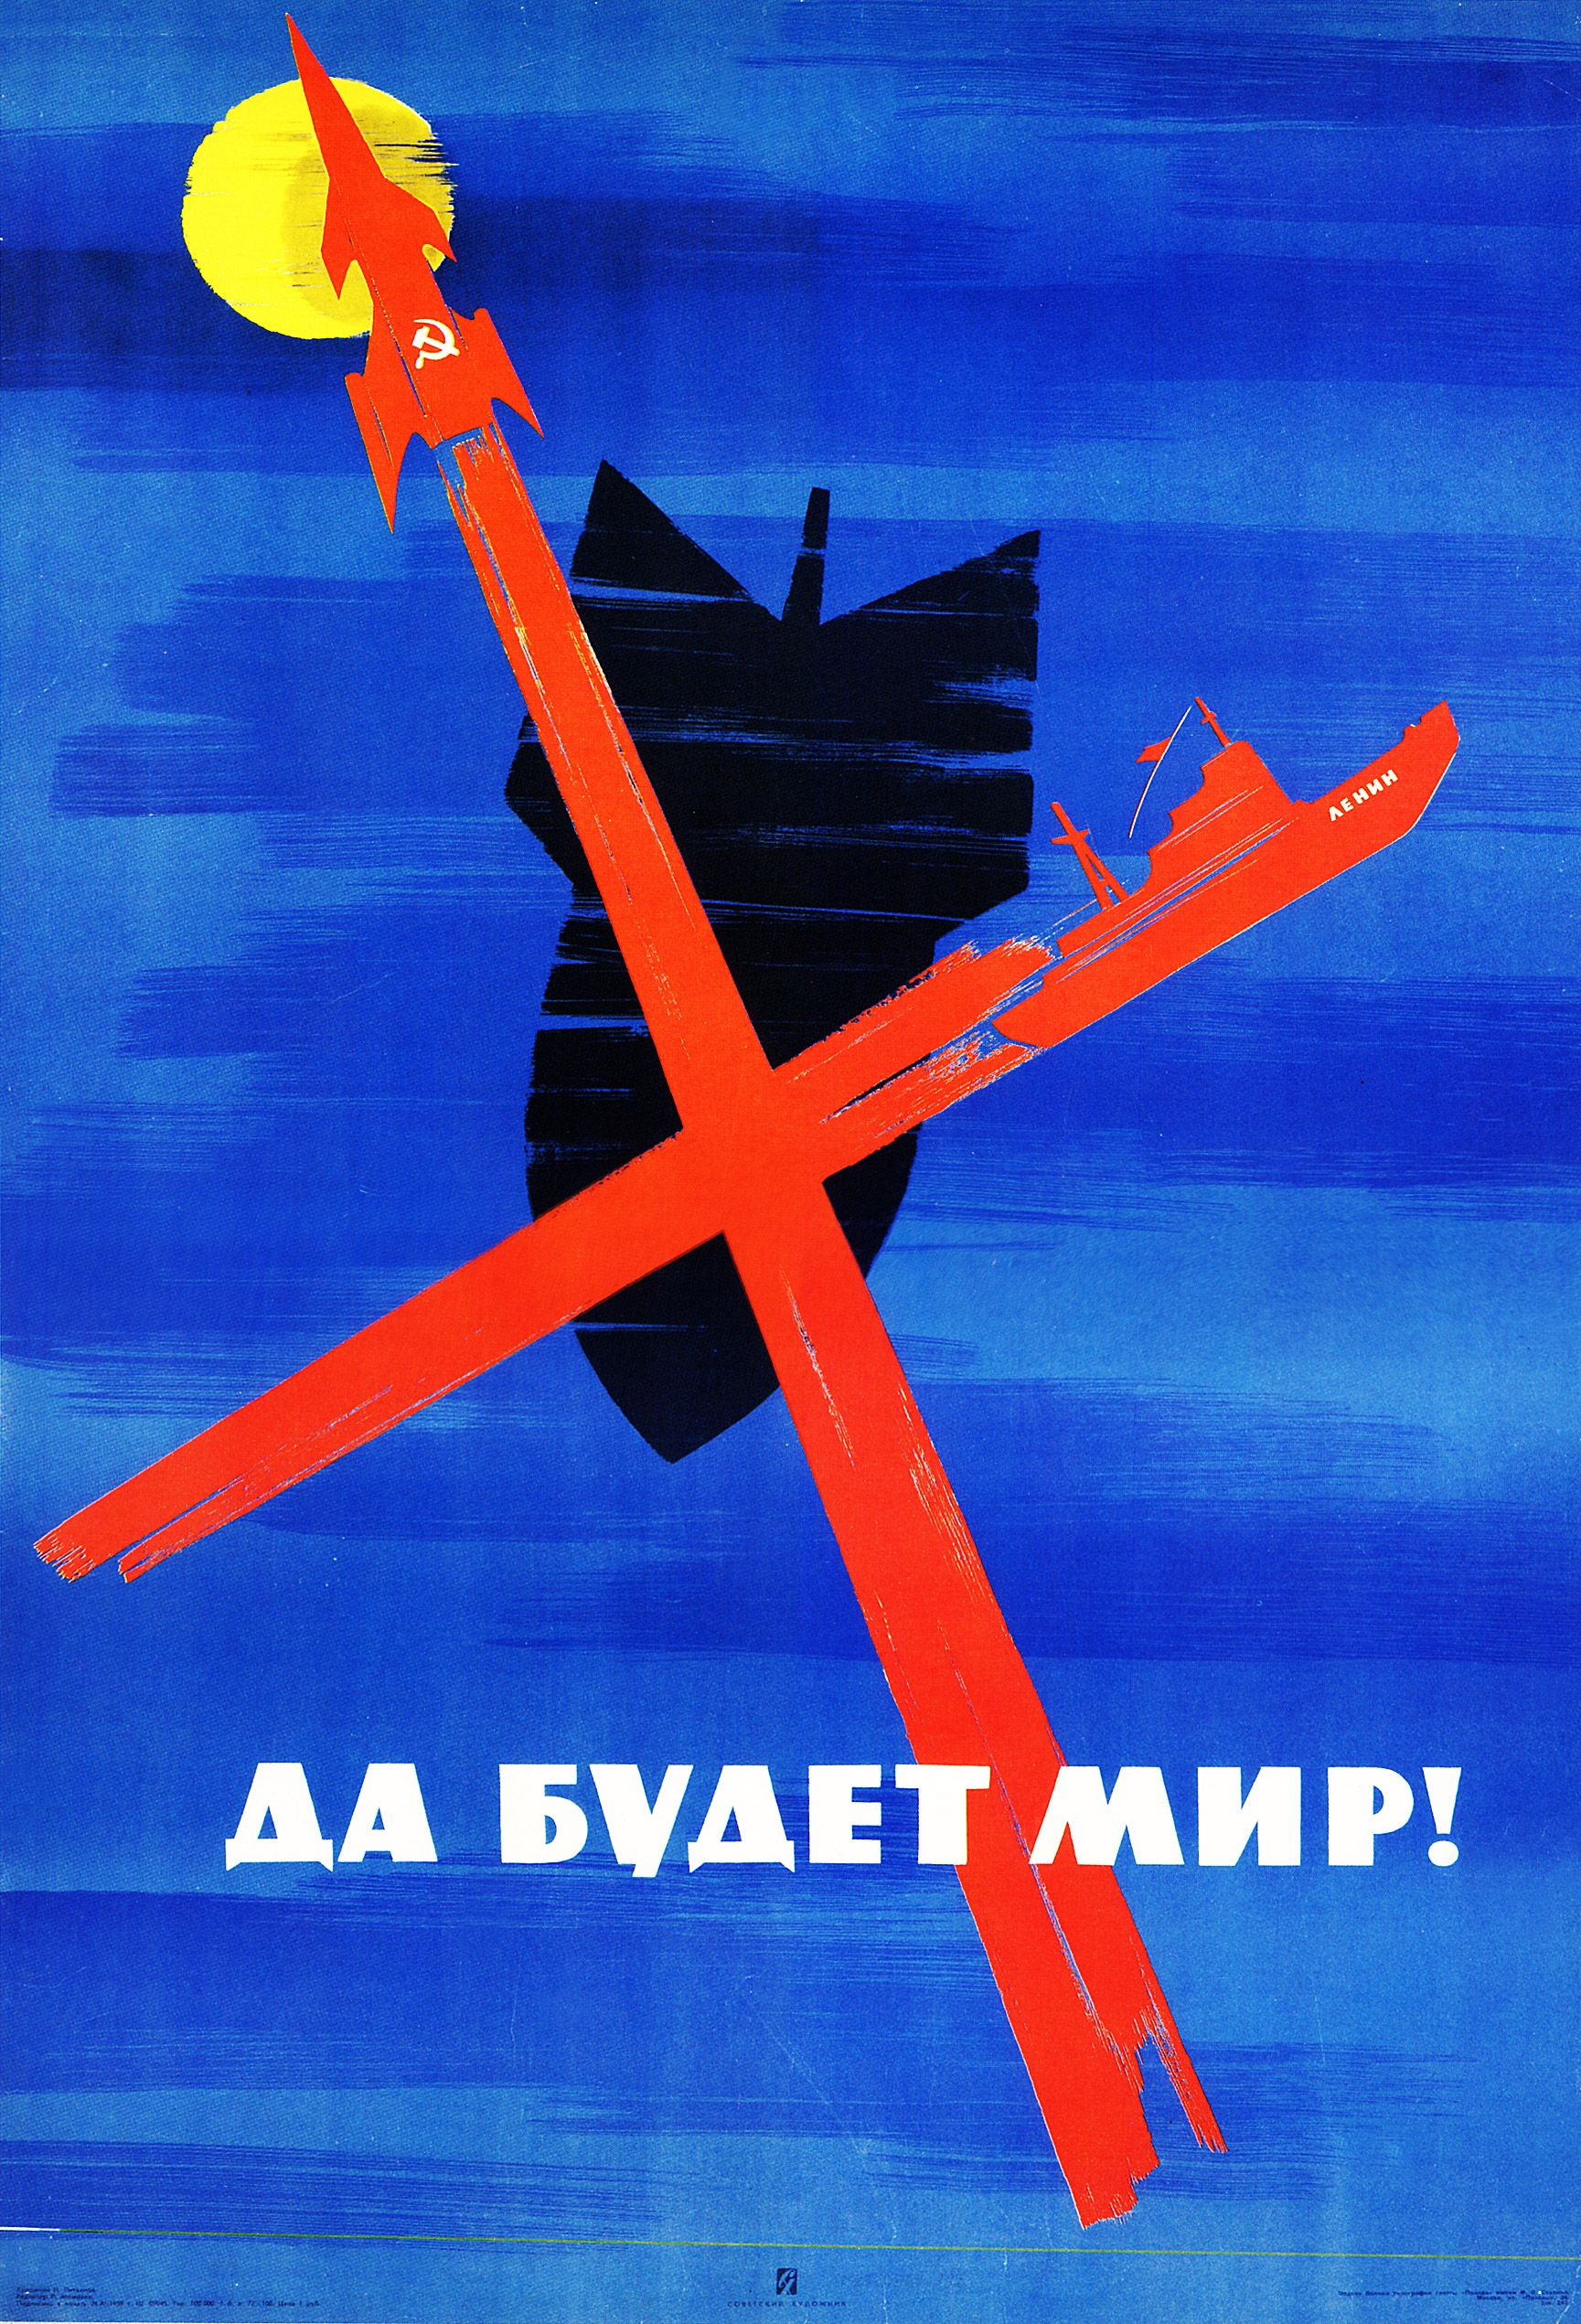 Soviet space program propaganda poster 16